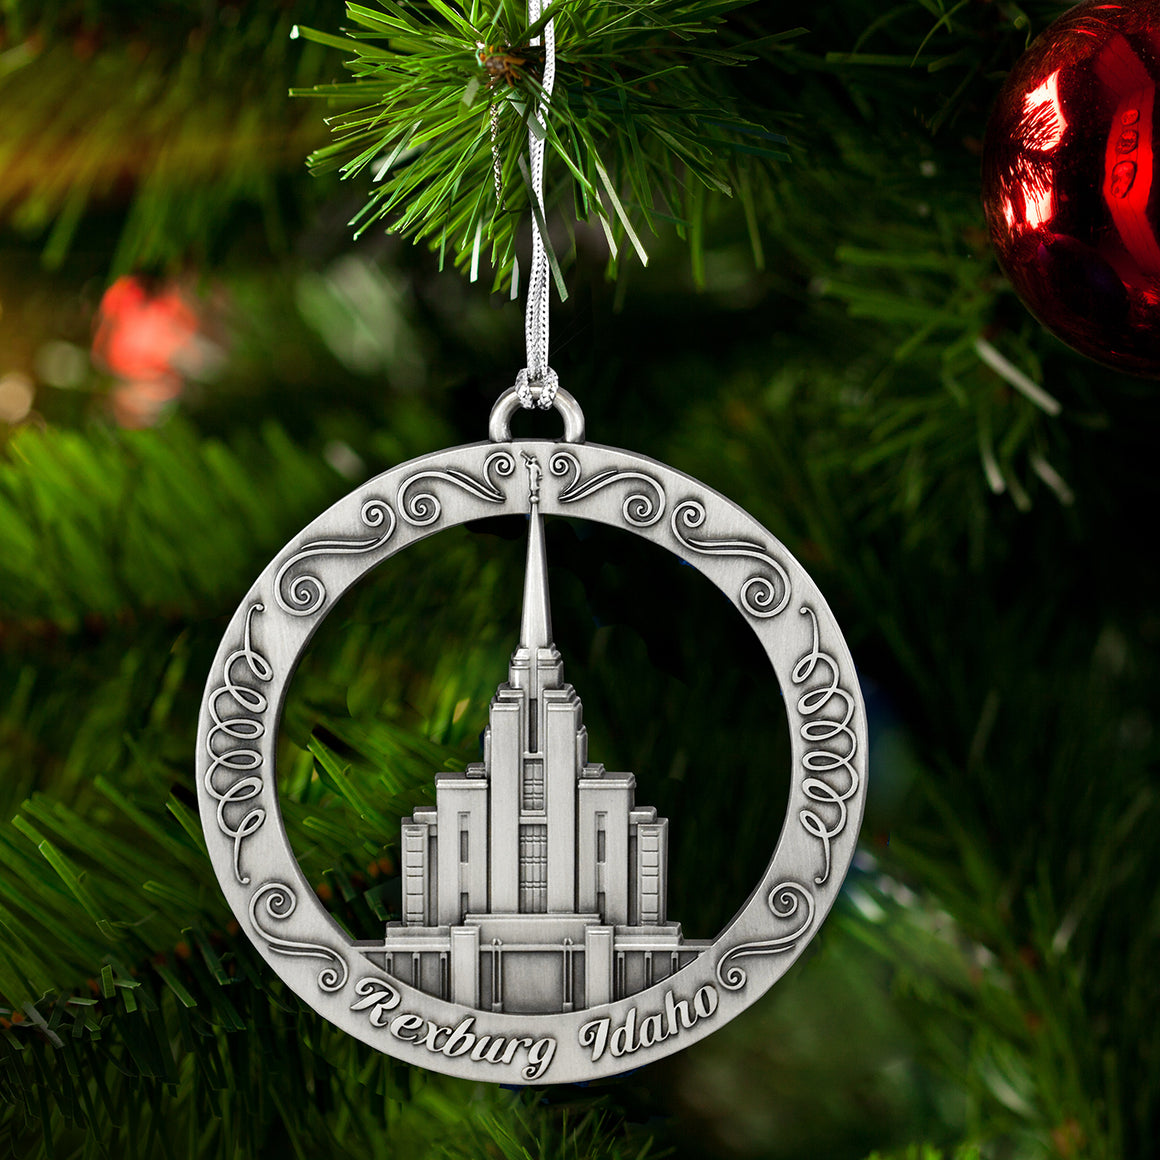 Rexburg Idaho Temple Ornament